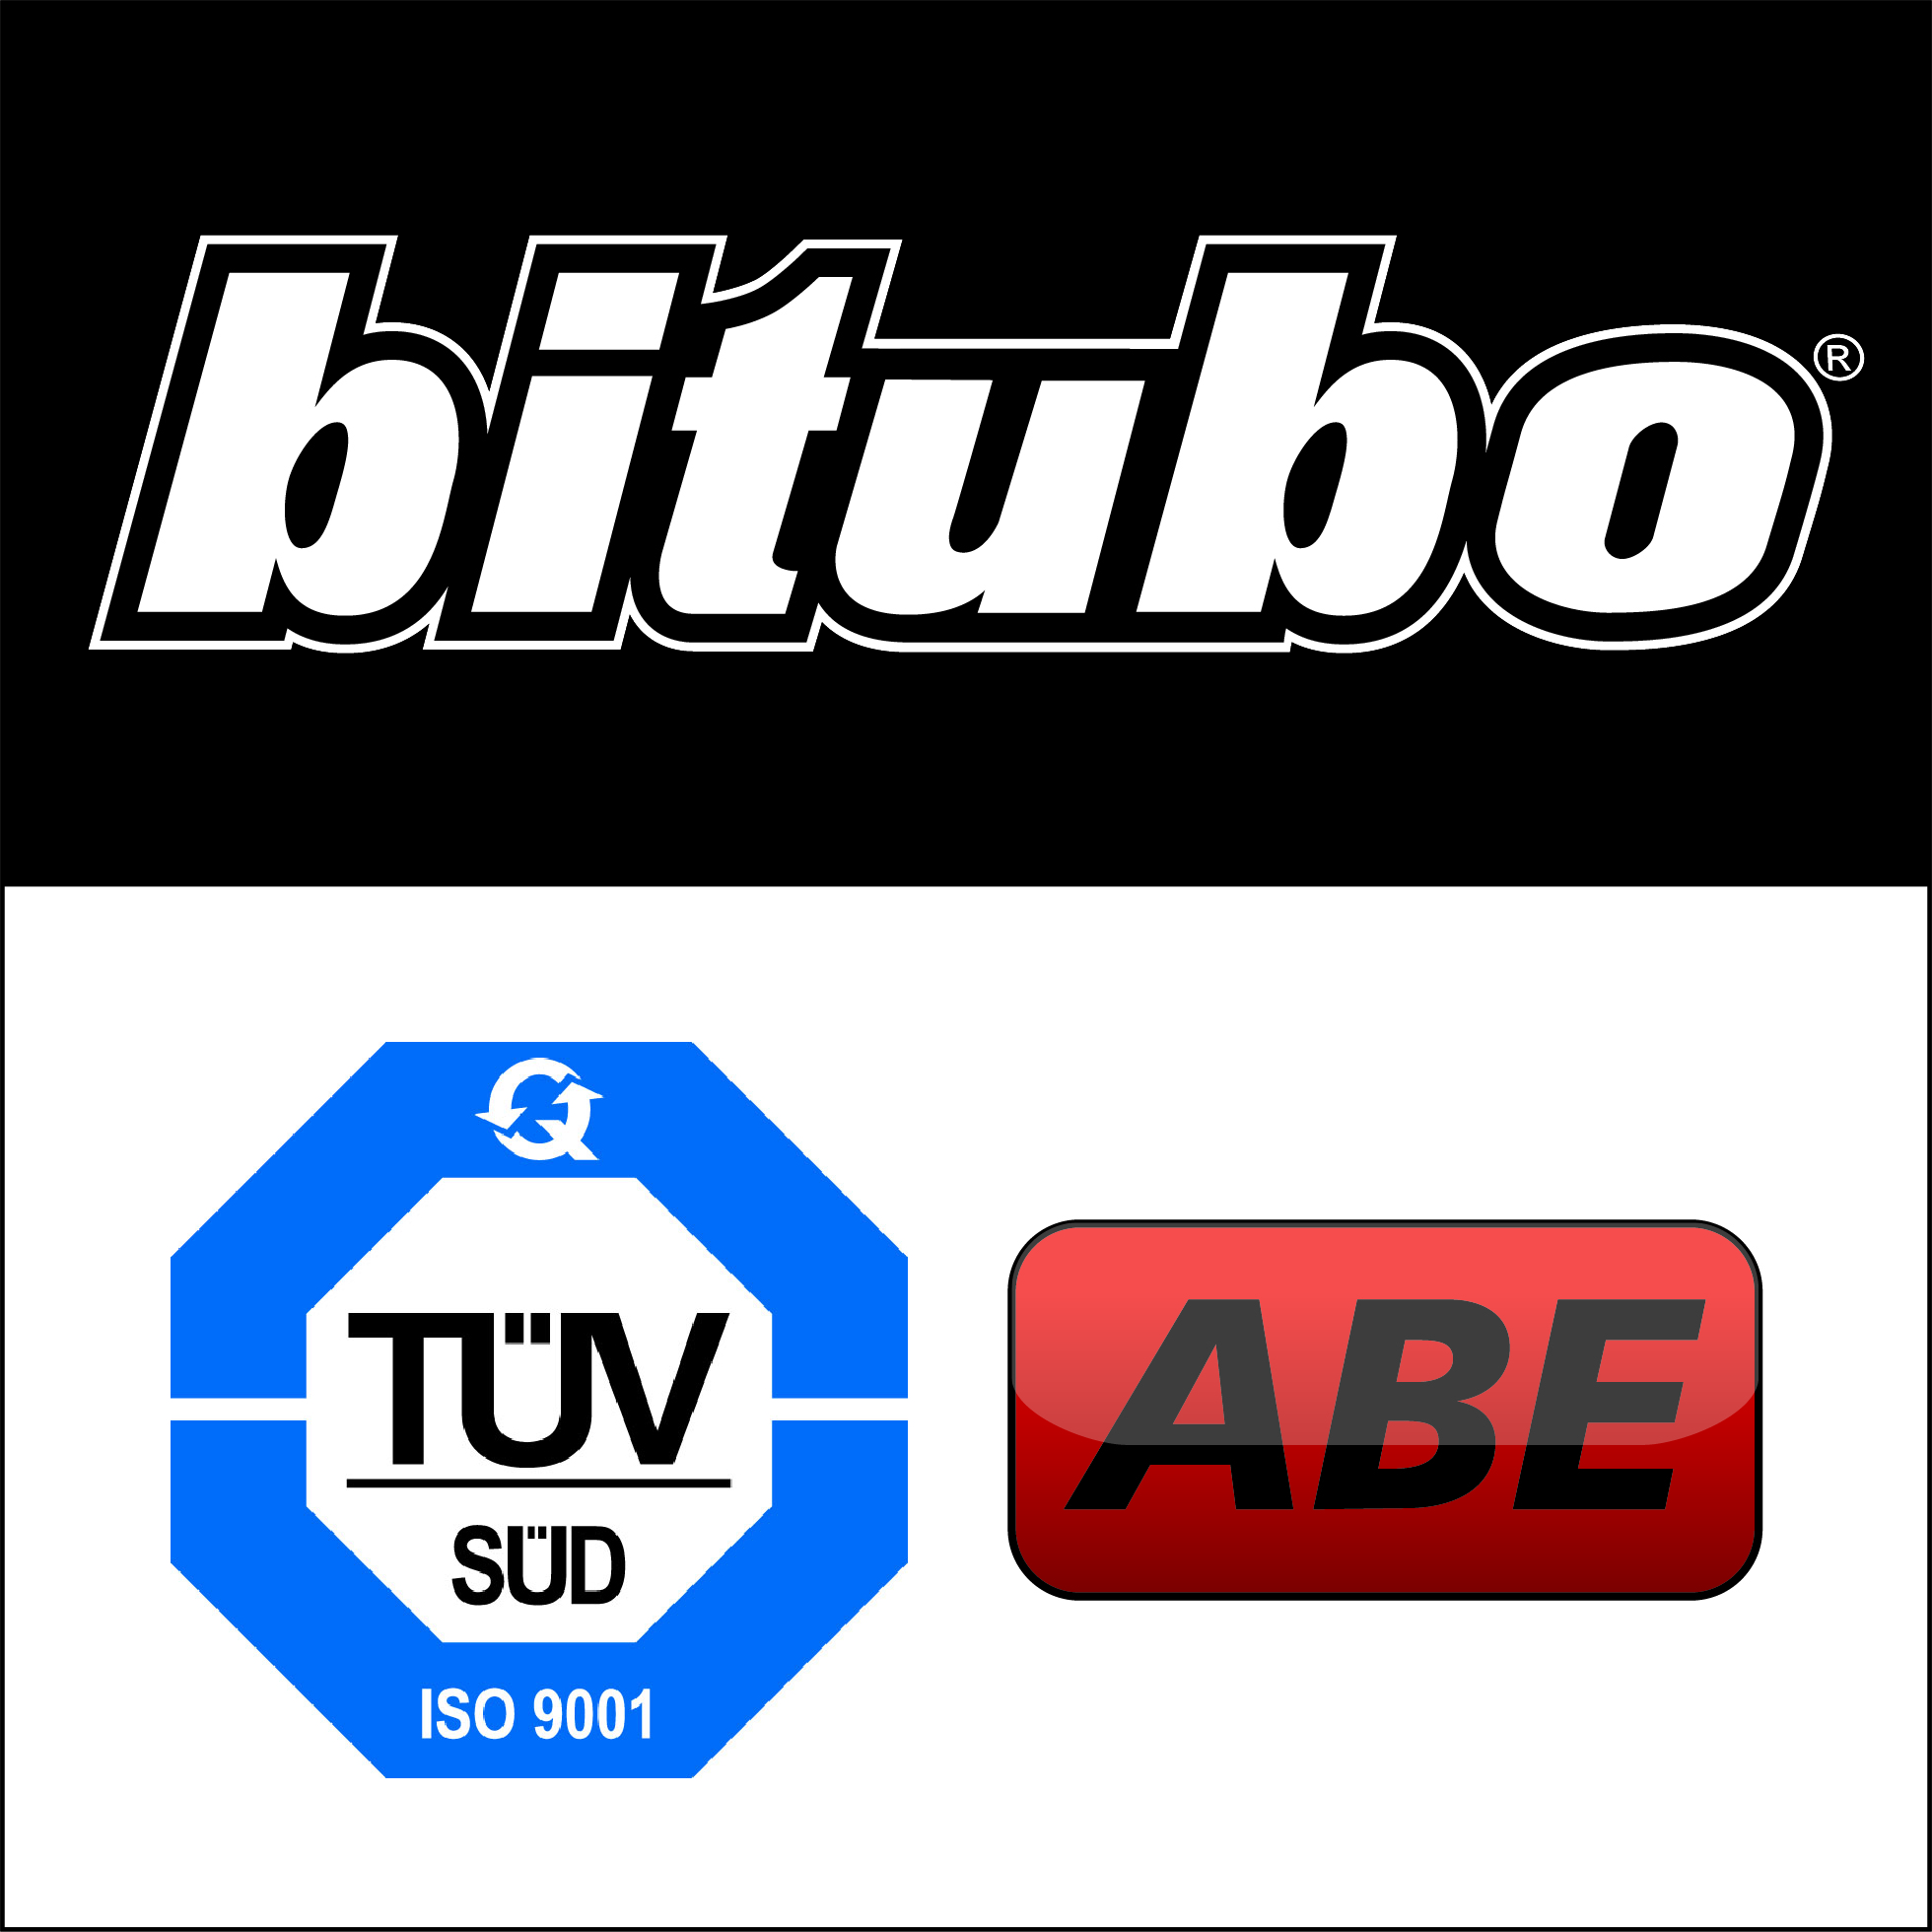 BITUBO RECEIVES ABE APPROVAL!